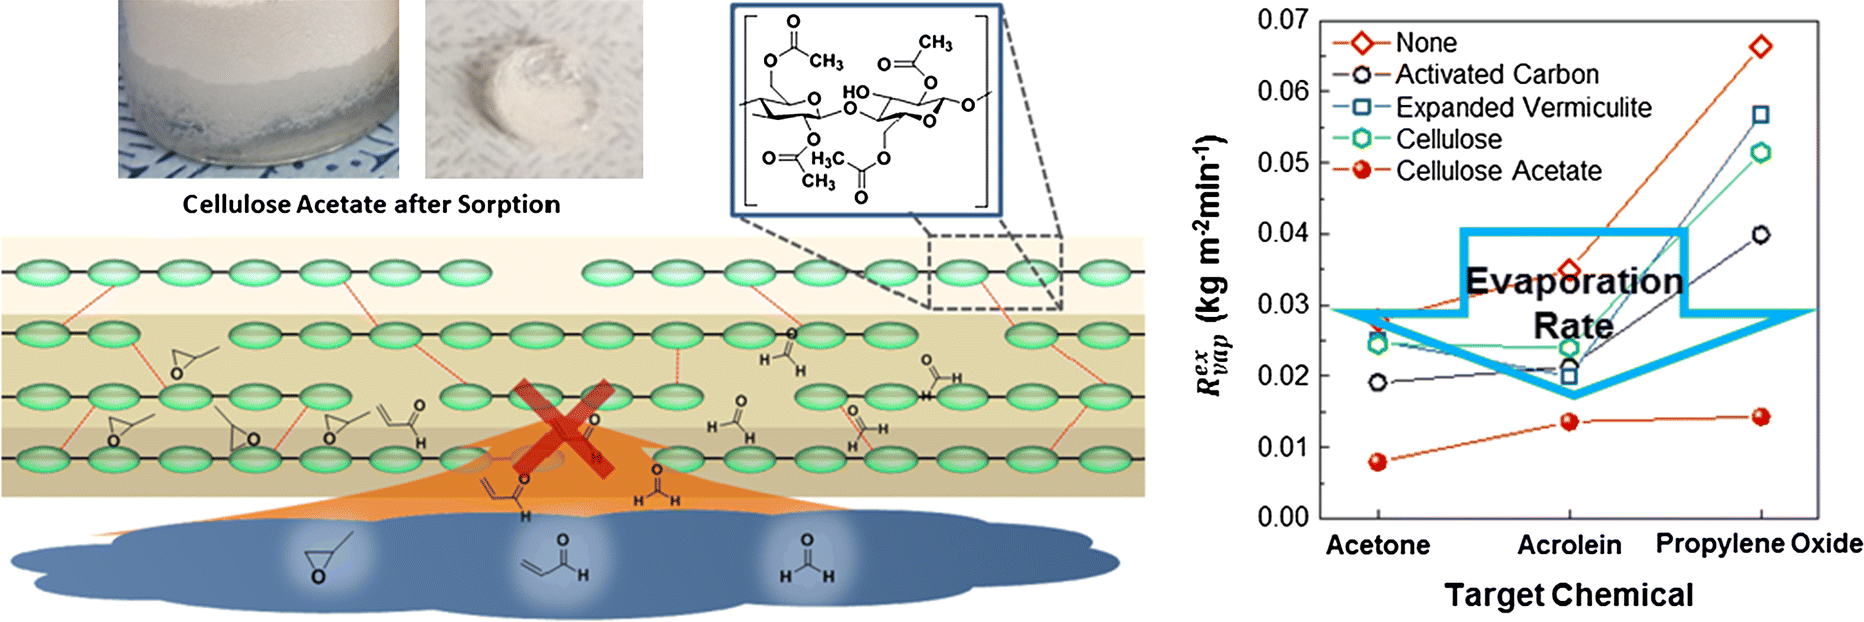 An eco-friendly cellulose acetate chemical sorbent for